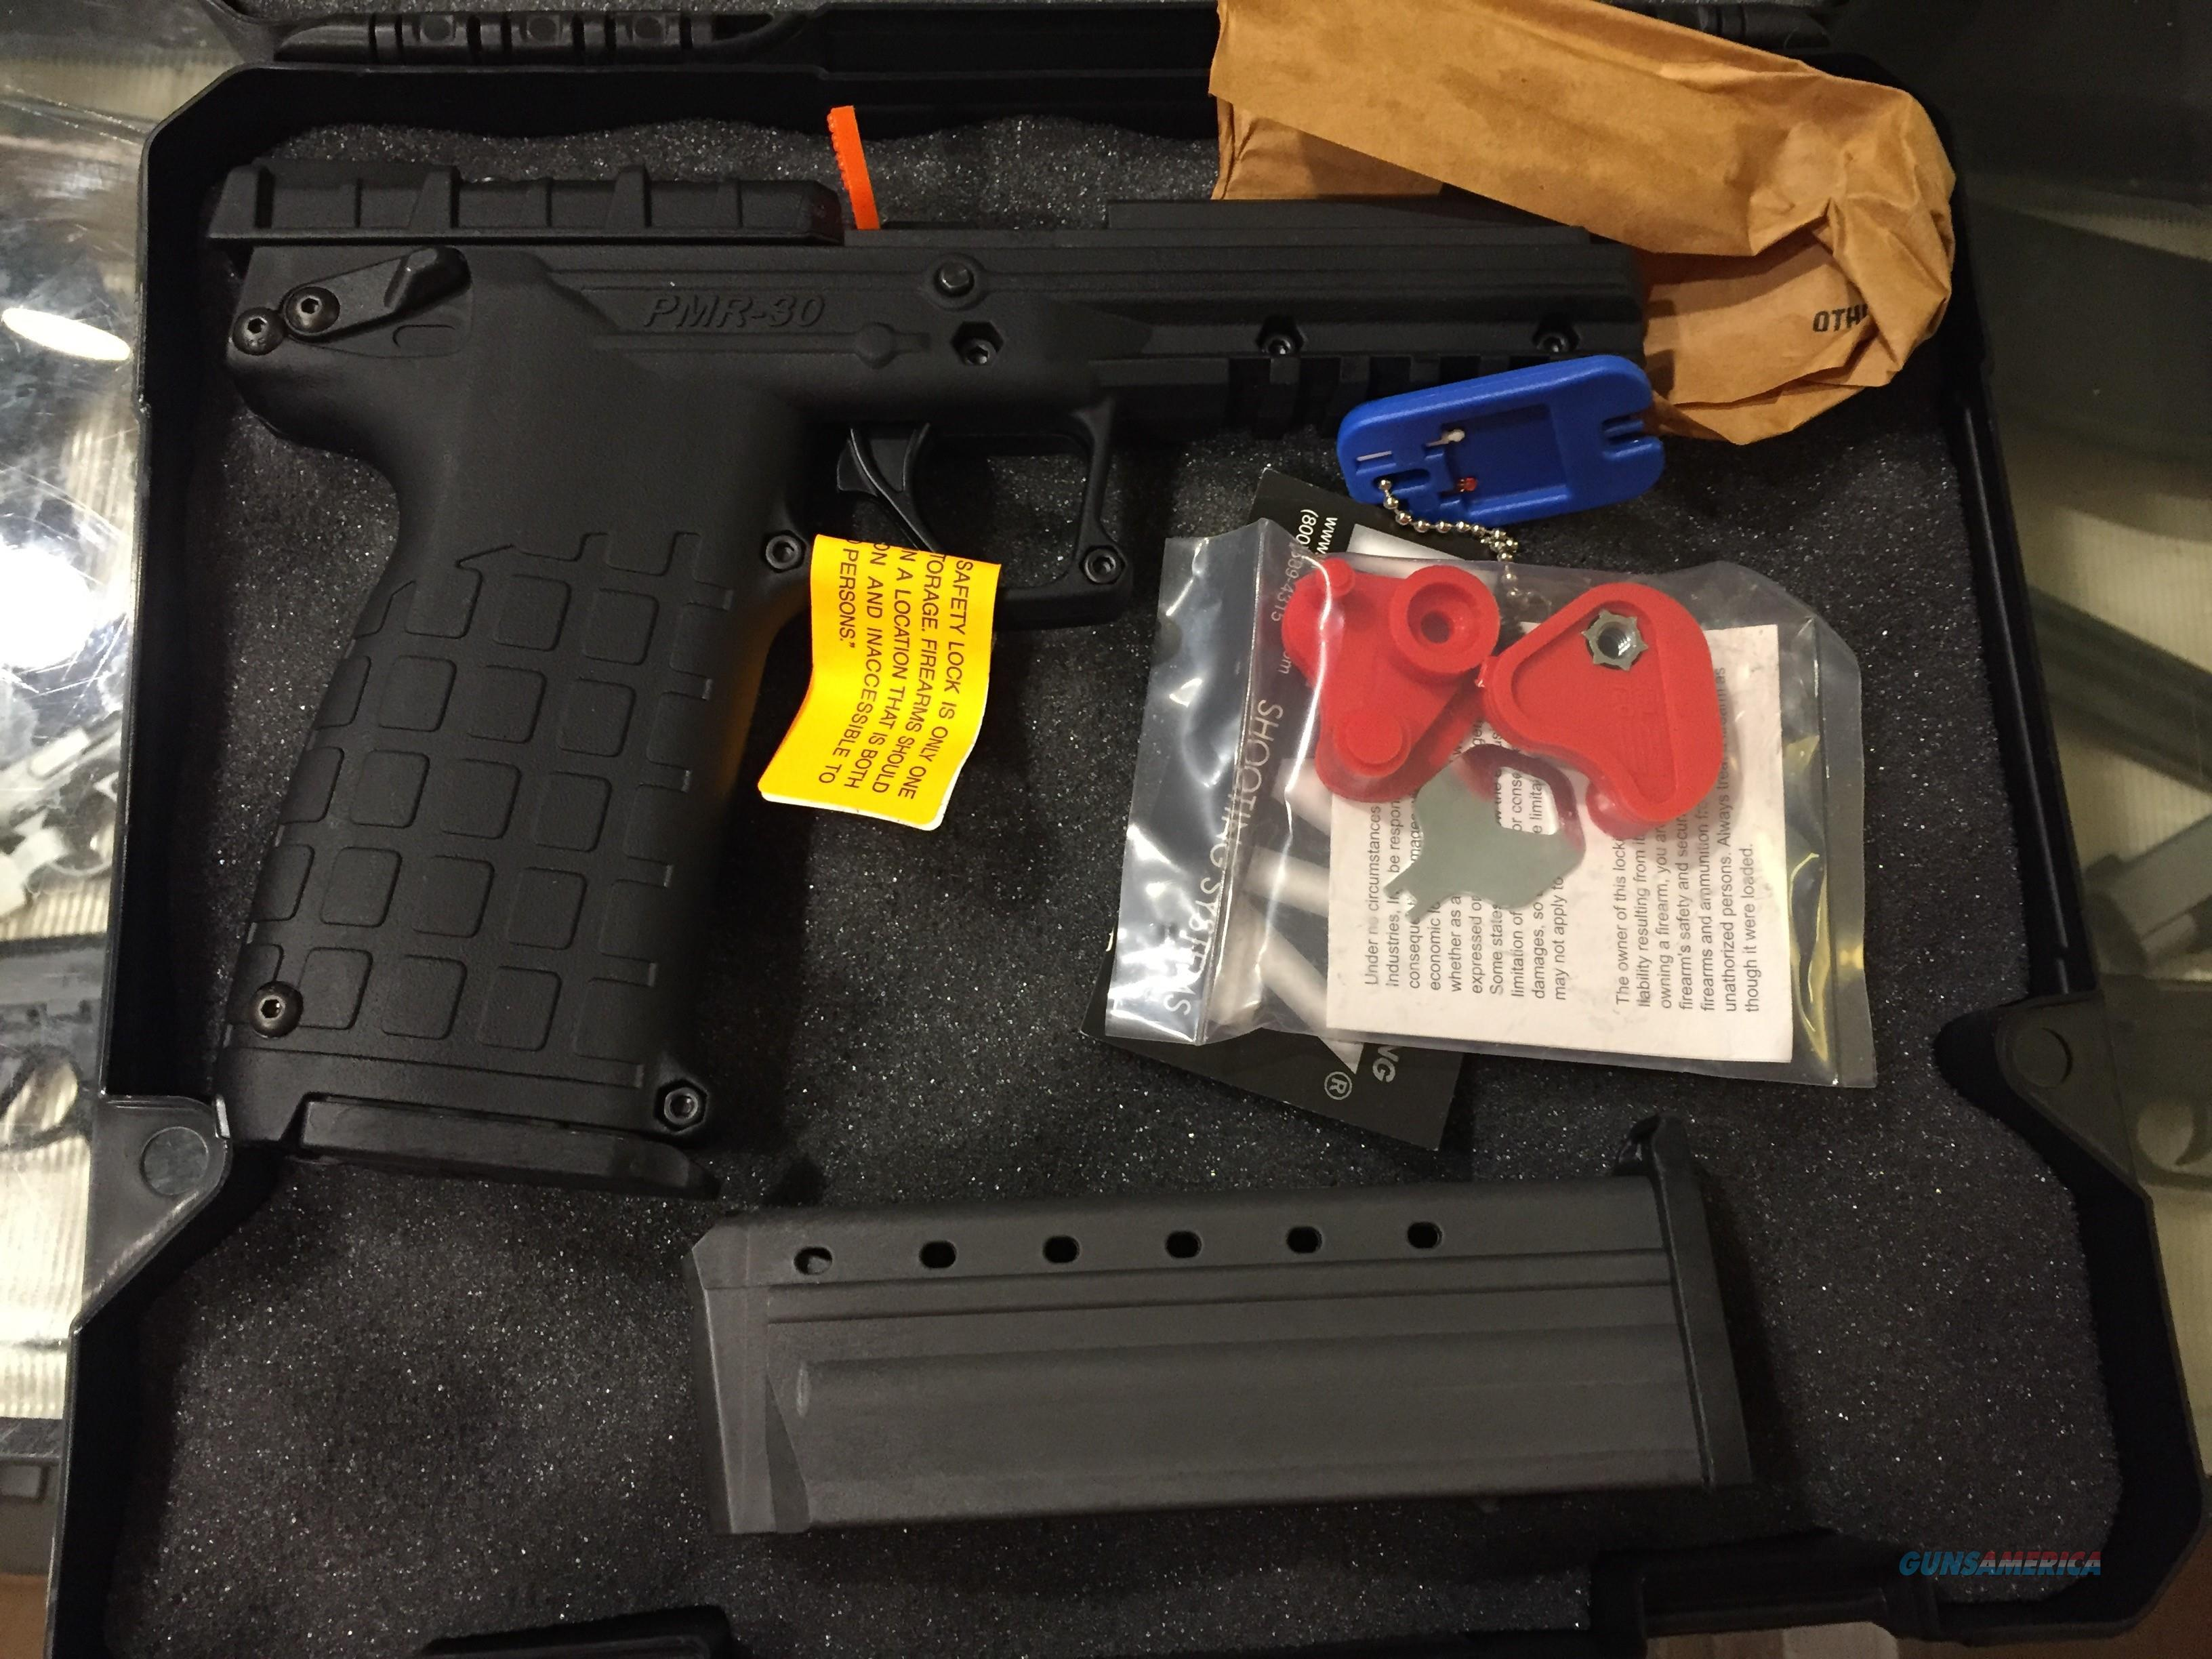 Kel Tec PMR 30 .22 WMR w/two 30 rnd mags PMR30 22mag New in case (No card fees added)  Guns > Pistols > Kel-Tec Pistols > Other